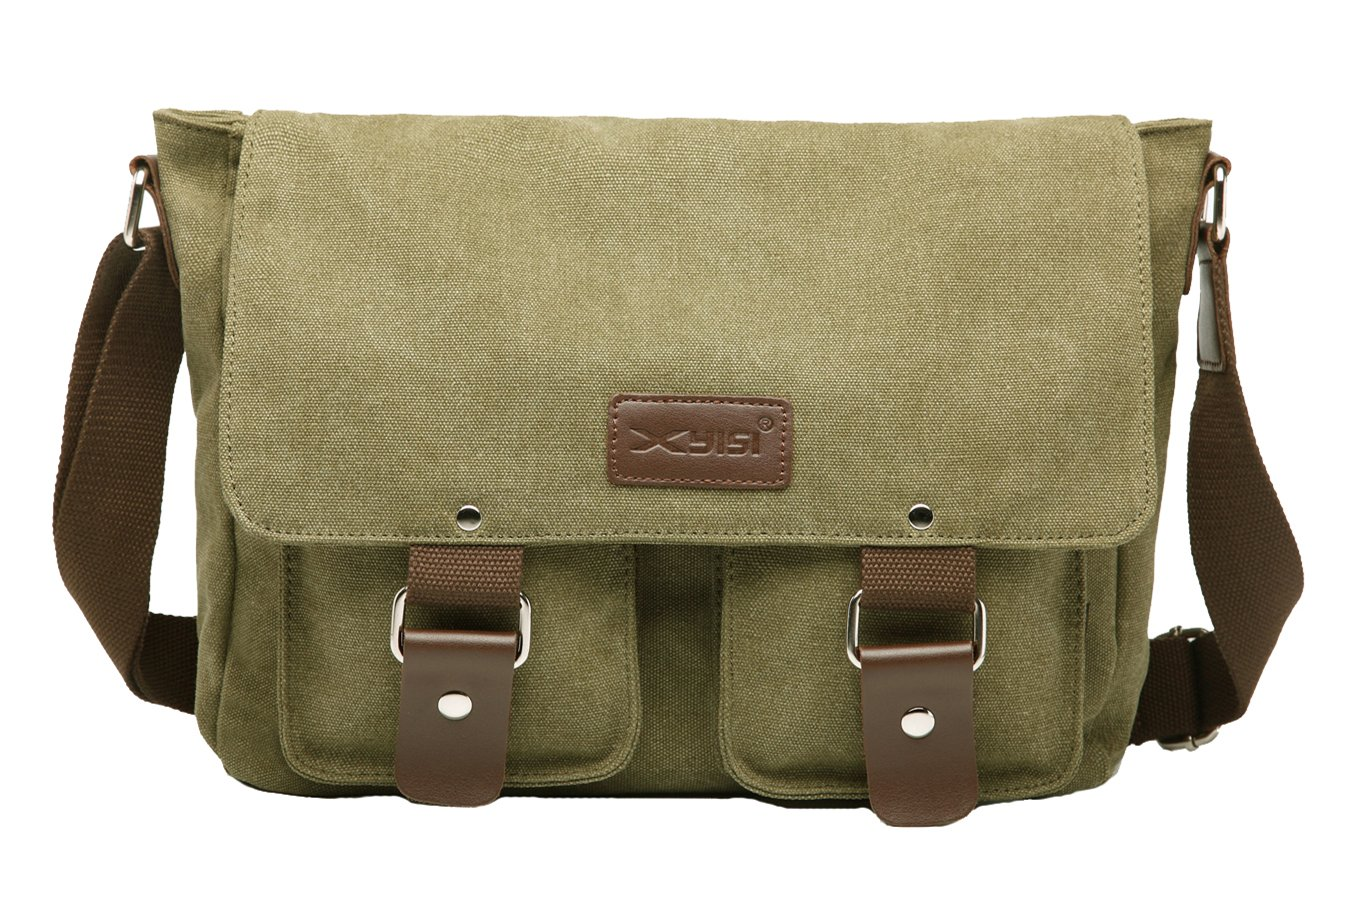 ALOVEY Canvas Satchel Laptop Messenger Bag Travel School Crossbody Shoulder Bags Green